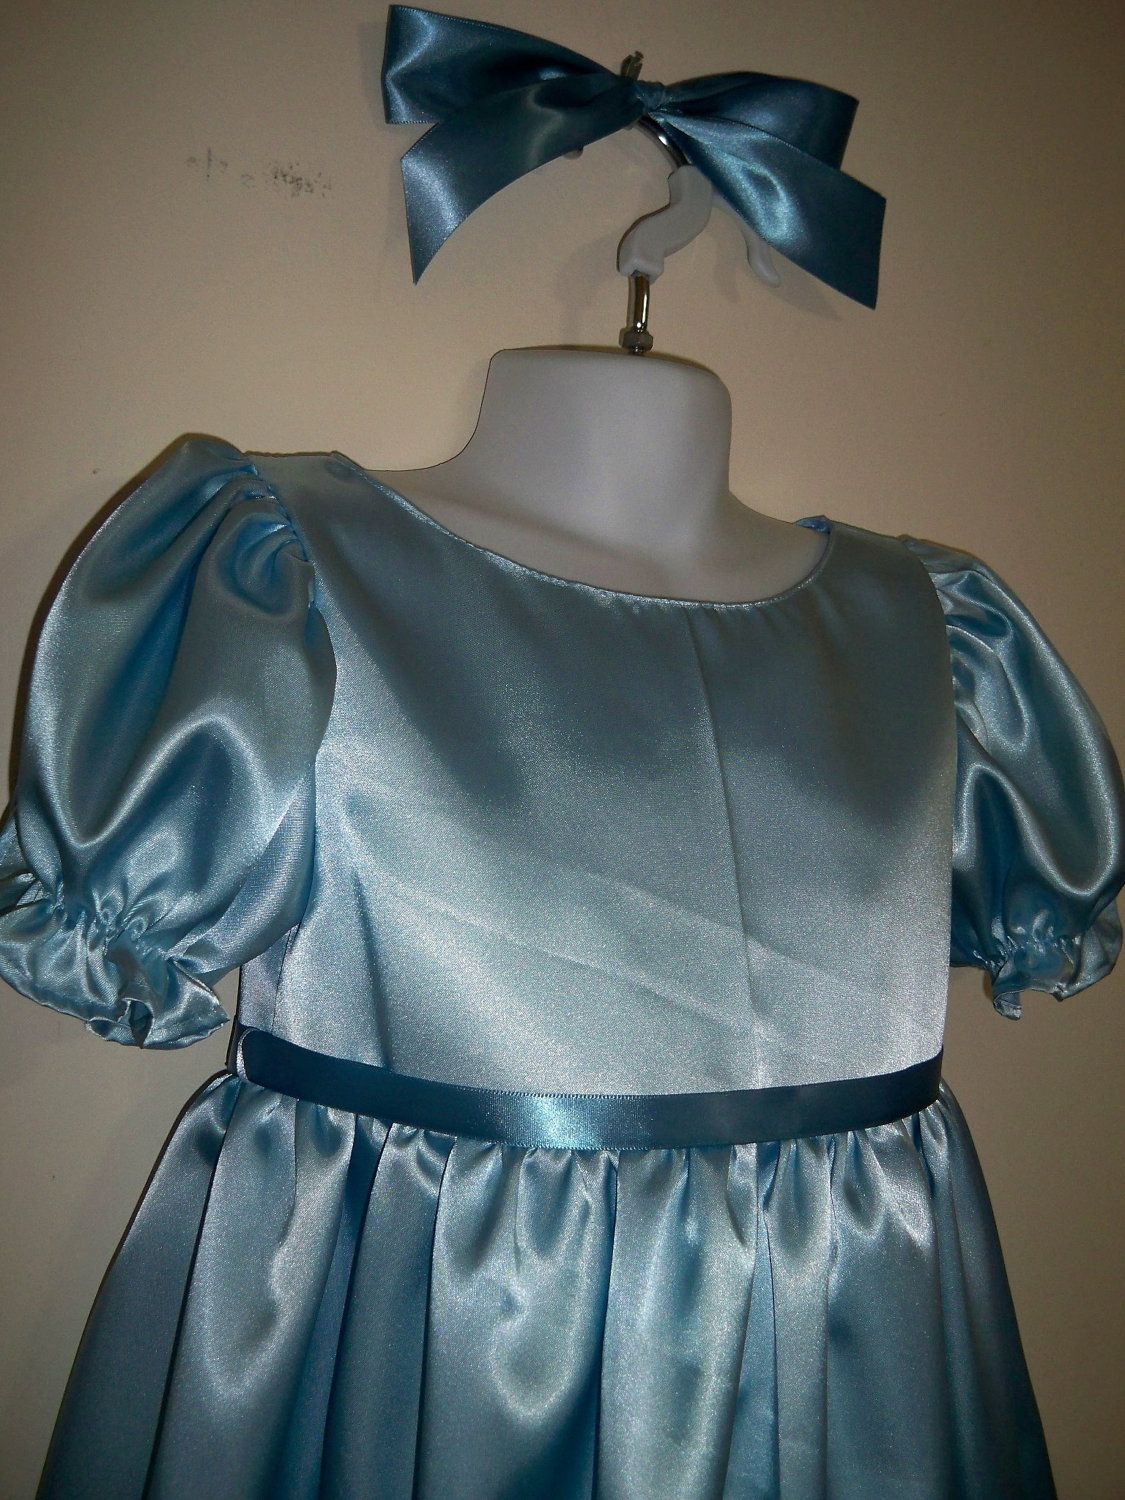 0c24e40989 Kids Size Disney s Wendy Darling Peter Pan Nightgown Made to Order by ninkey  on Etsy